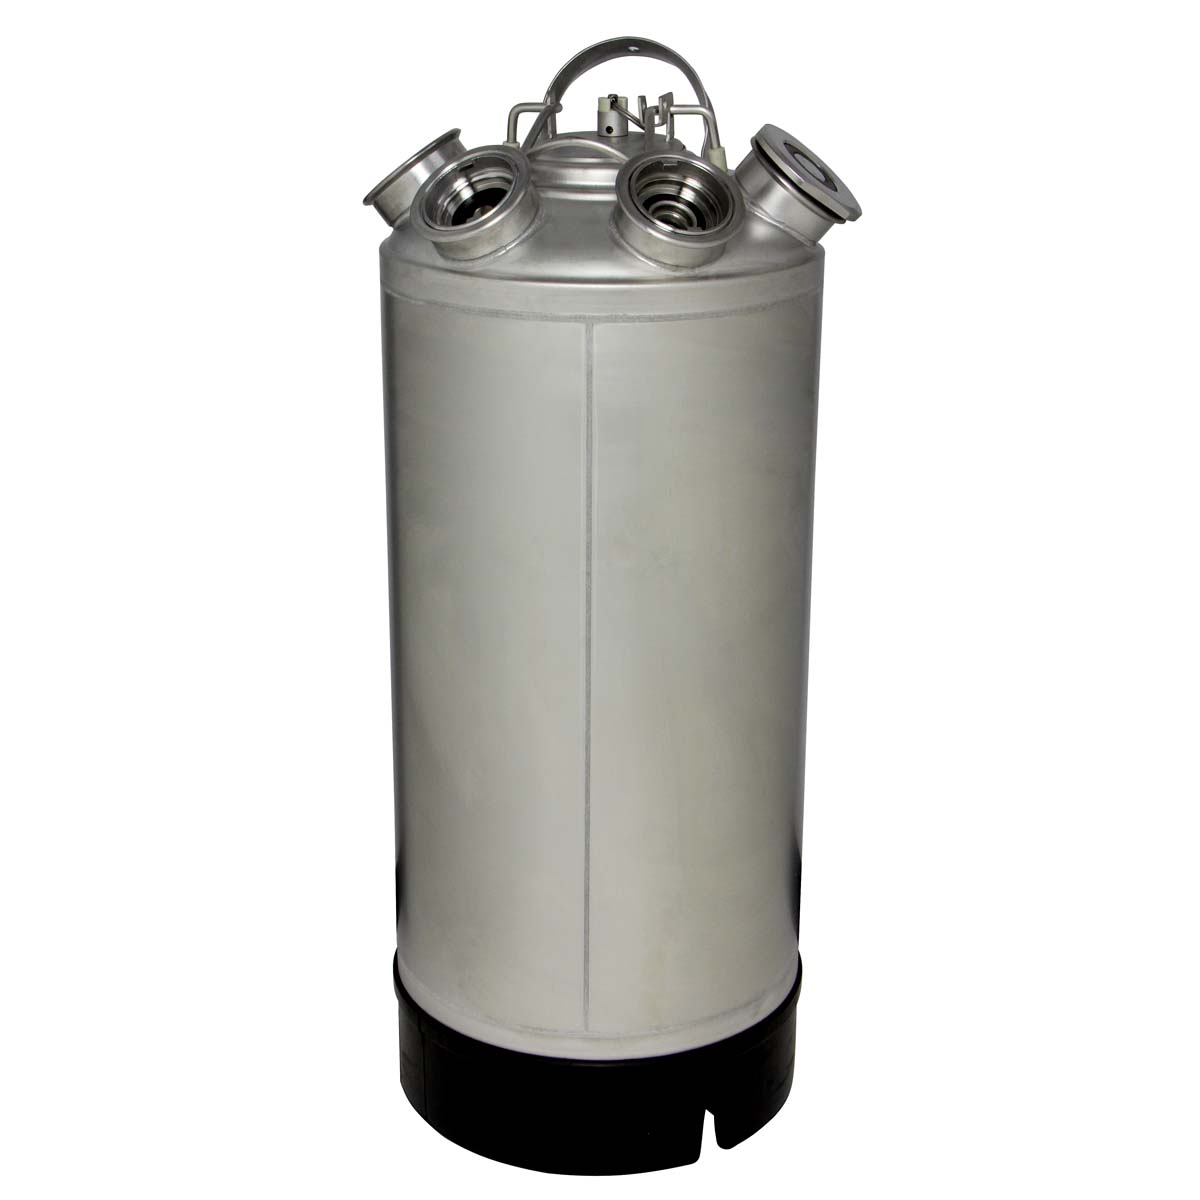 Kegco Draft Beer Keg Tap Stainless Steel Cleaning Can ...